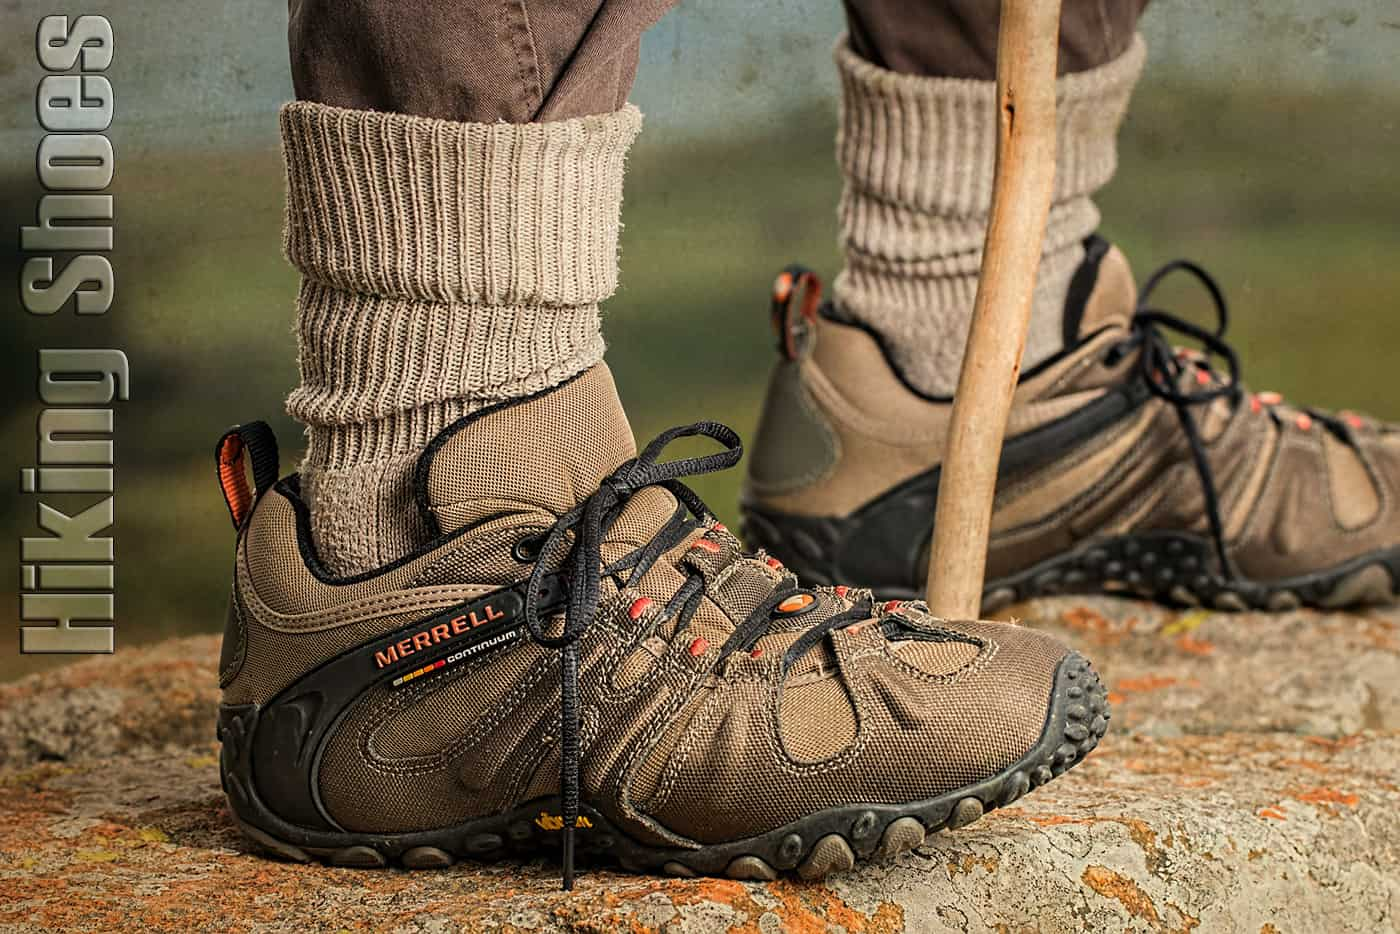 Best Hiking Shoes 2020.The 8 Best Hiking Shoes For 2020 Options For Wide Flat